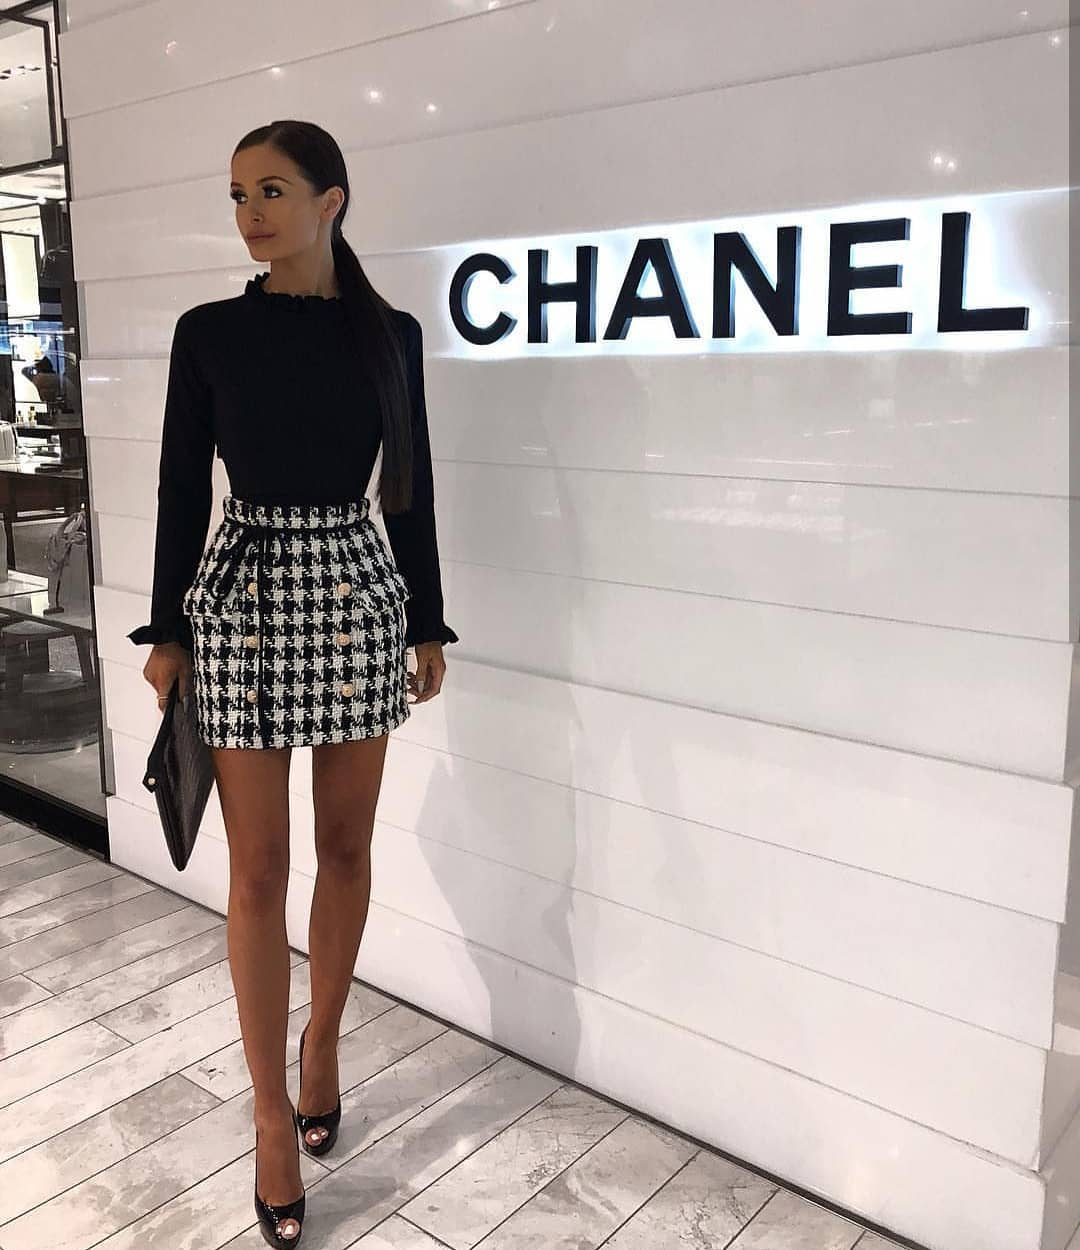 Black Blouse And Houndstooth Print Mini Skirt Monochrome Outfit For Spring 2019